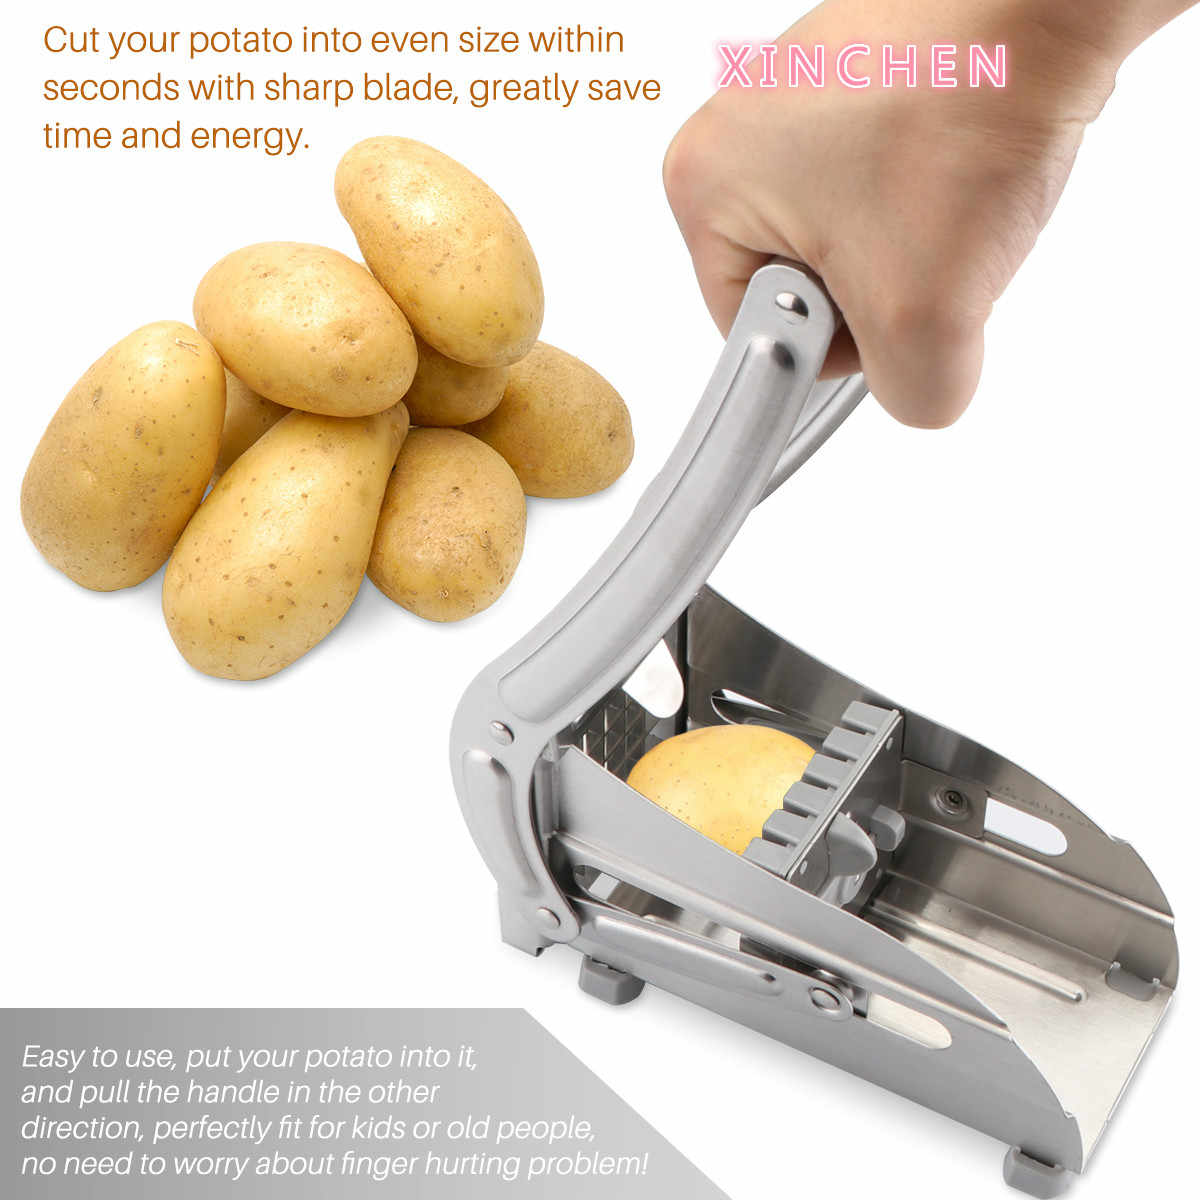 XINCHEN  Cutting Machine Cutting French Fries Best Value Stainless Steel Does Not Use Home Potato Slicer Cucumber